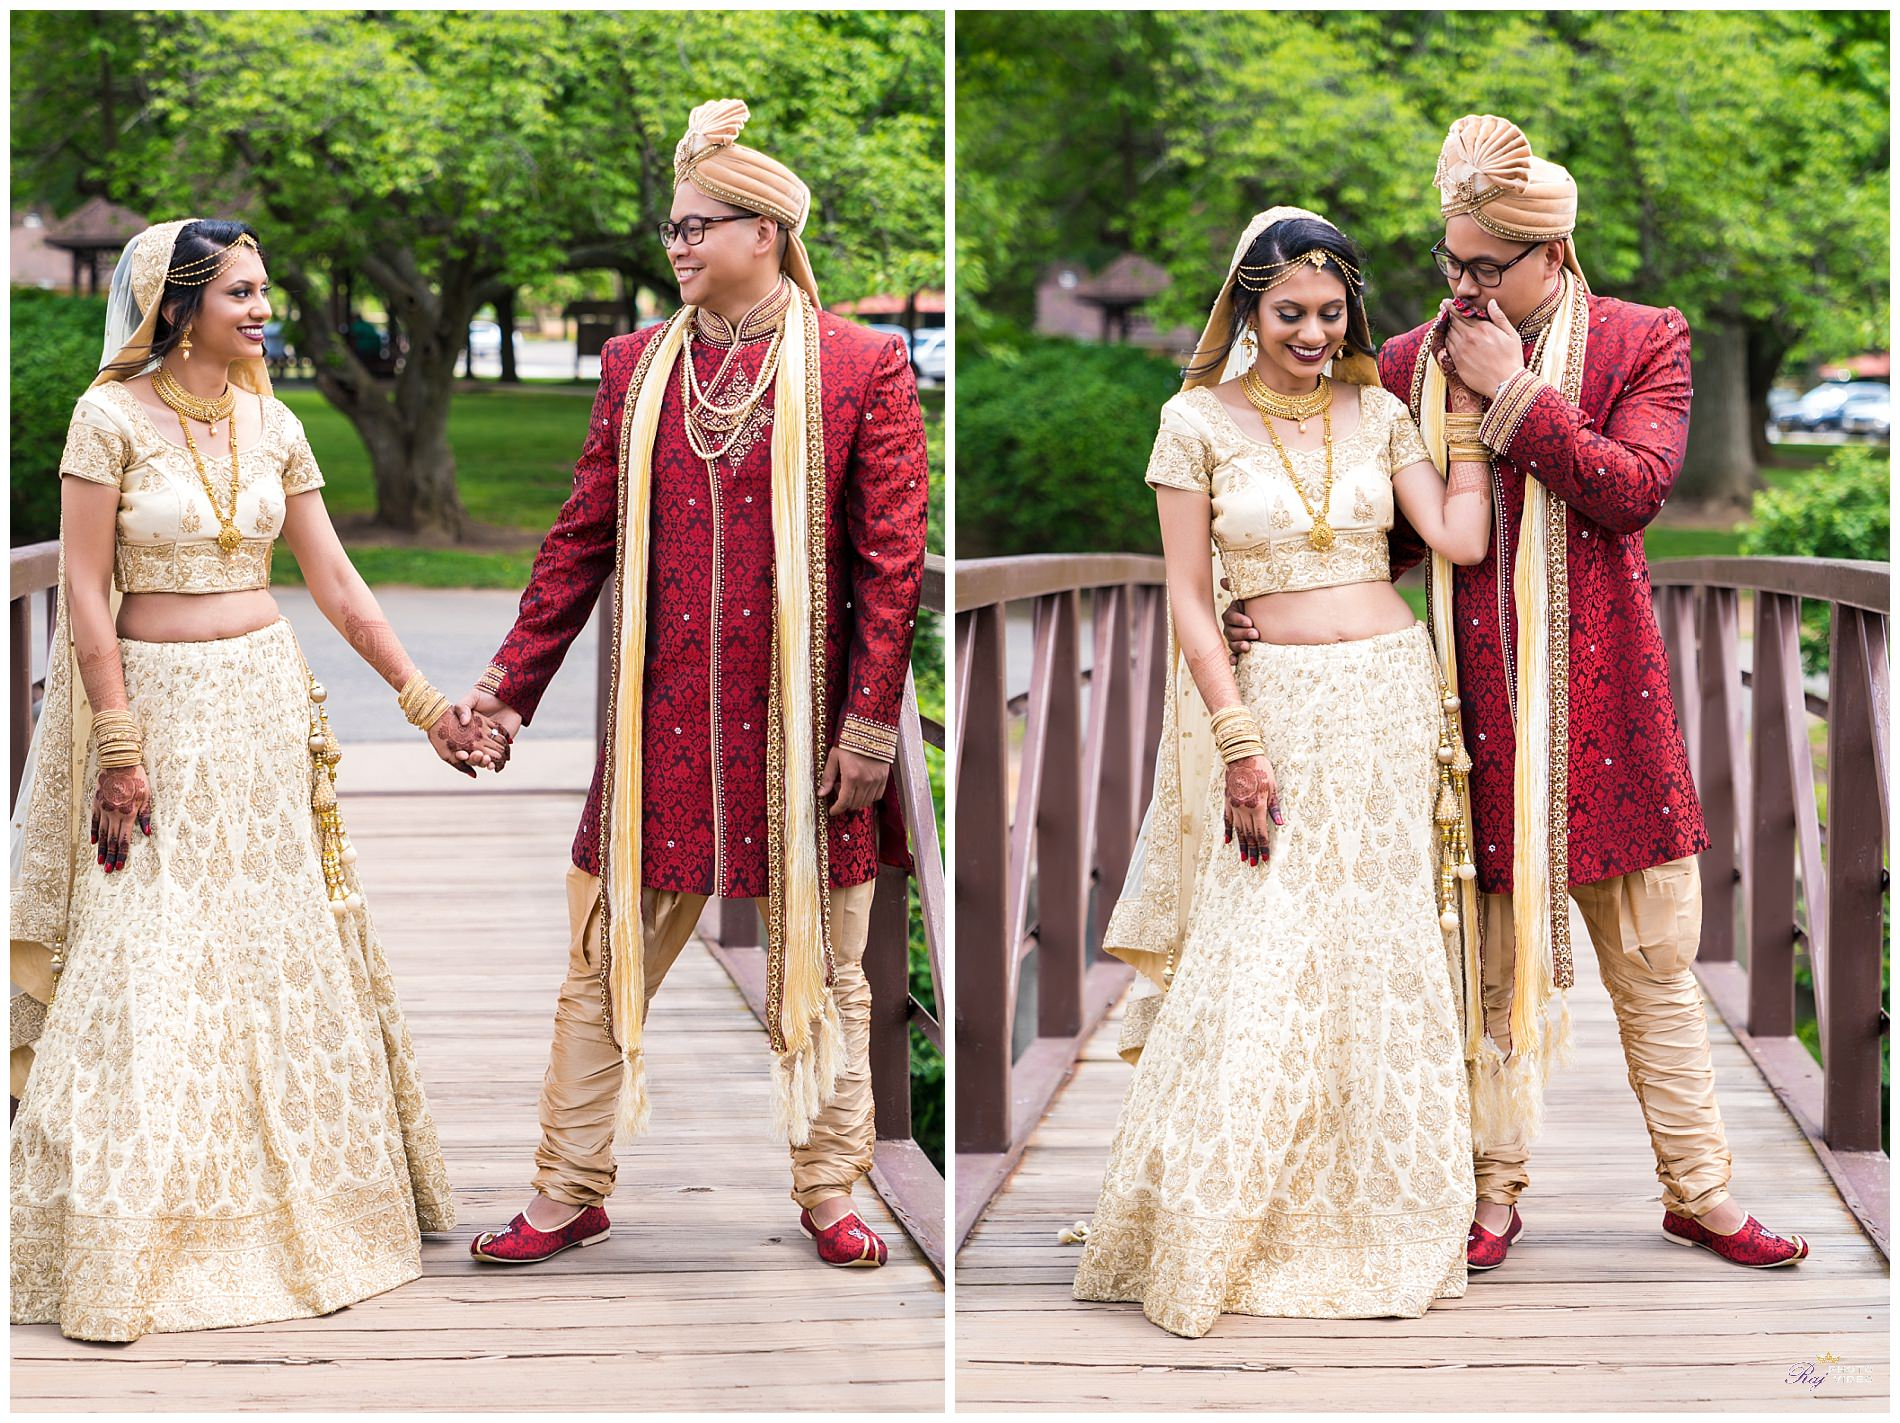 Roosevelt-Park-Bride-Groom-Portrait-Shoot-Khusbu-Jeff-12.jpg